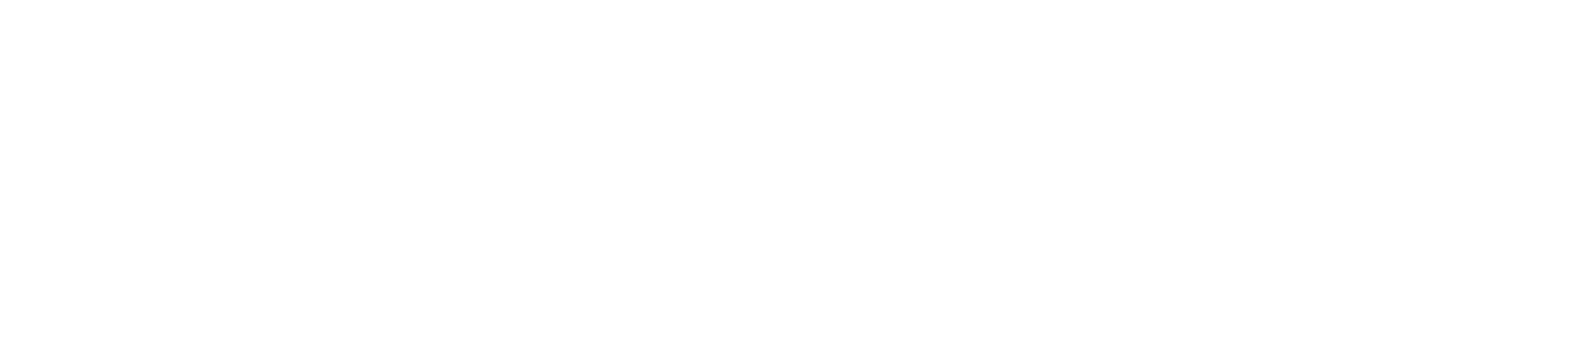 Parochie De Pinte-Zevergem-Latem-Deurle logo